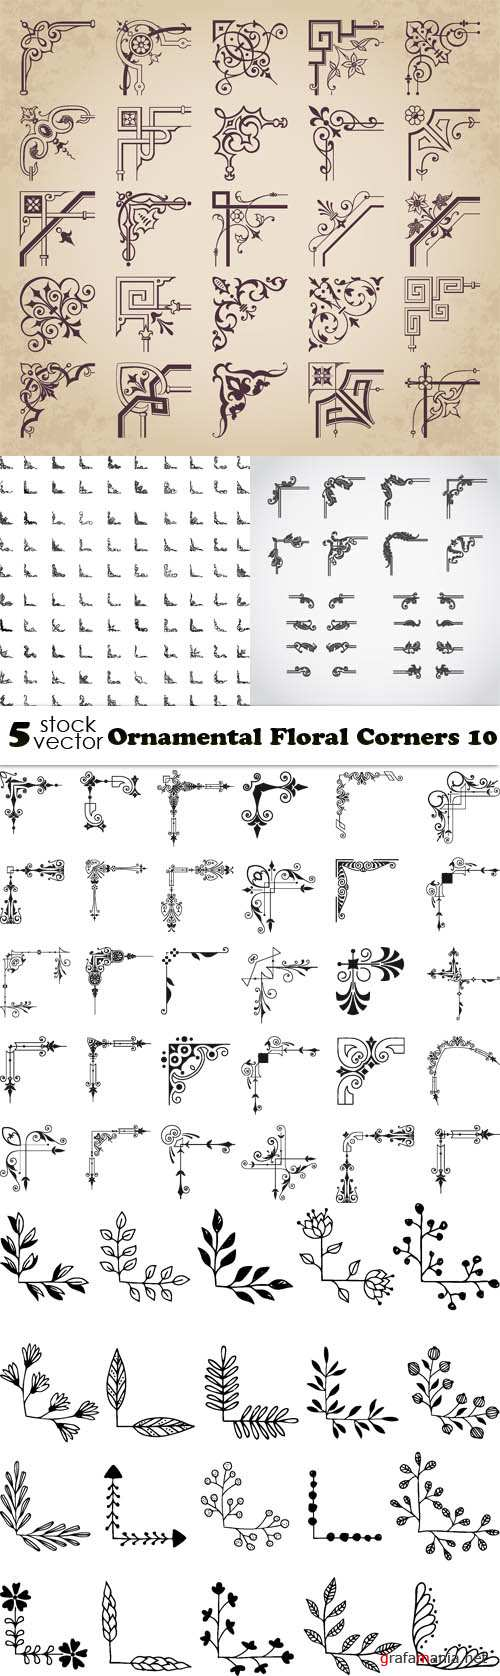 Vectors - Ornamental Floral Corners 10